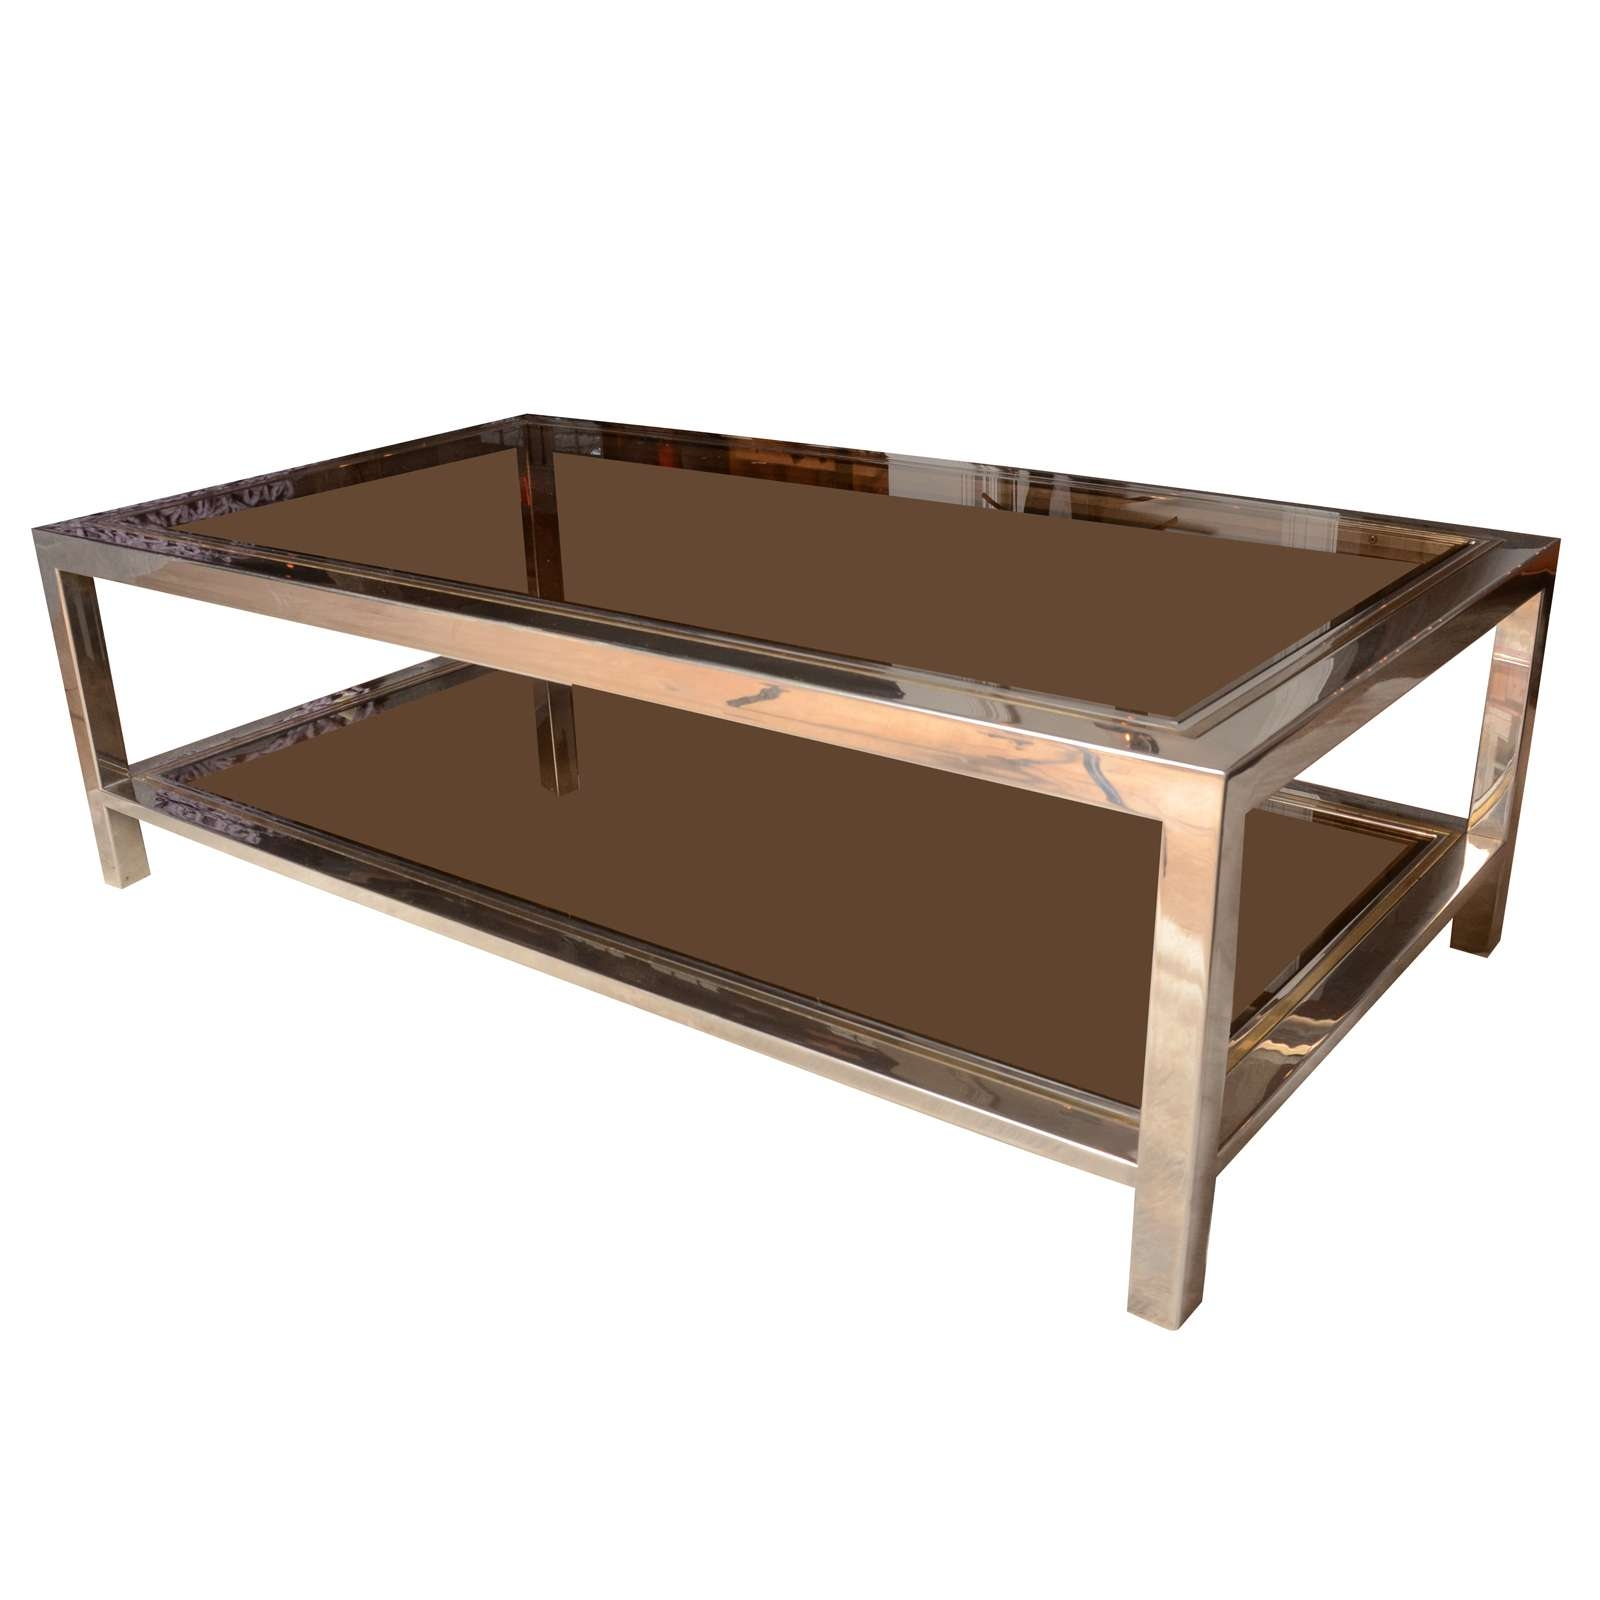 Most Recent Metal Coffee Tables With Glass Top Inside Decorations : Modern Glass Top Coffee Tables With Metal Base (View 2 of 20)